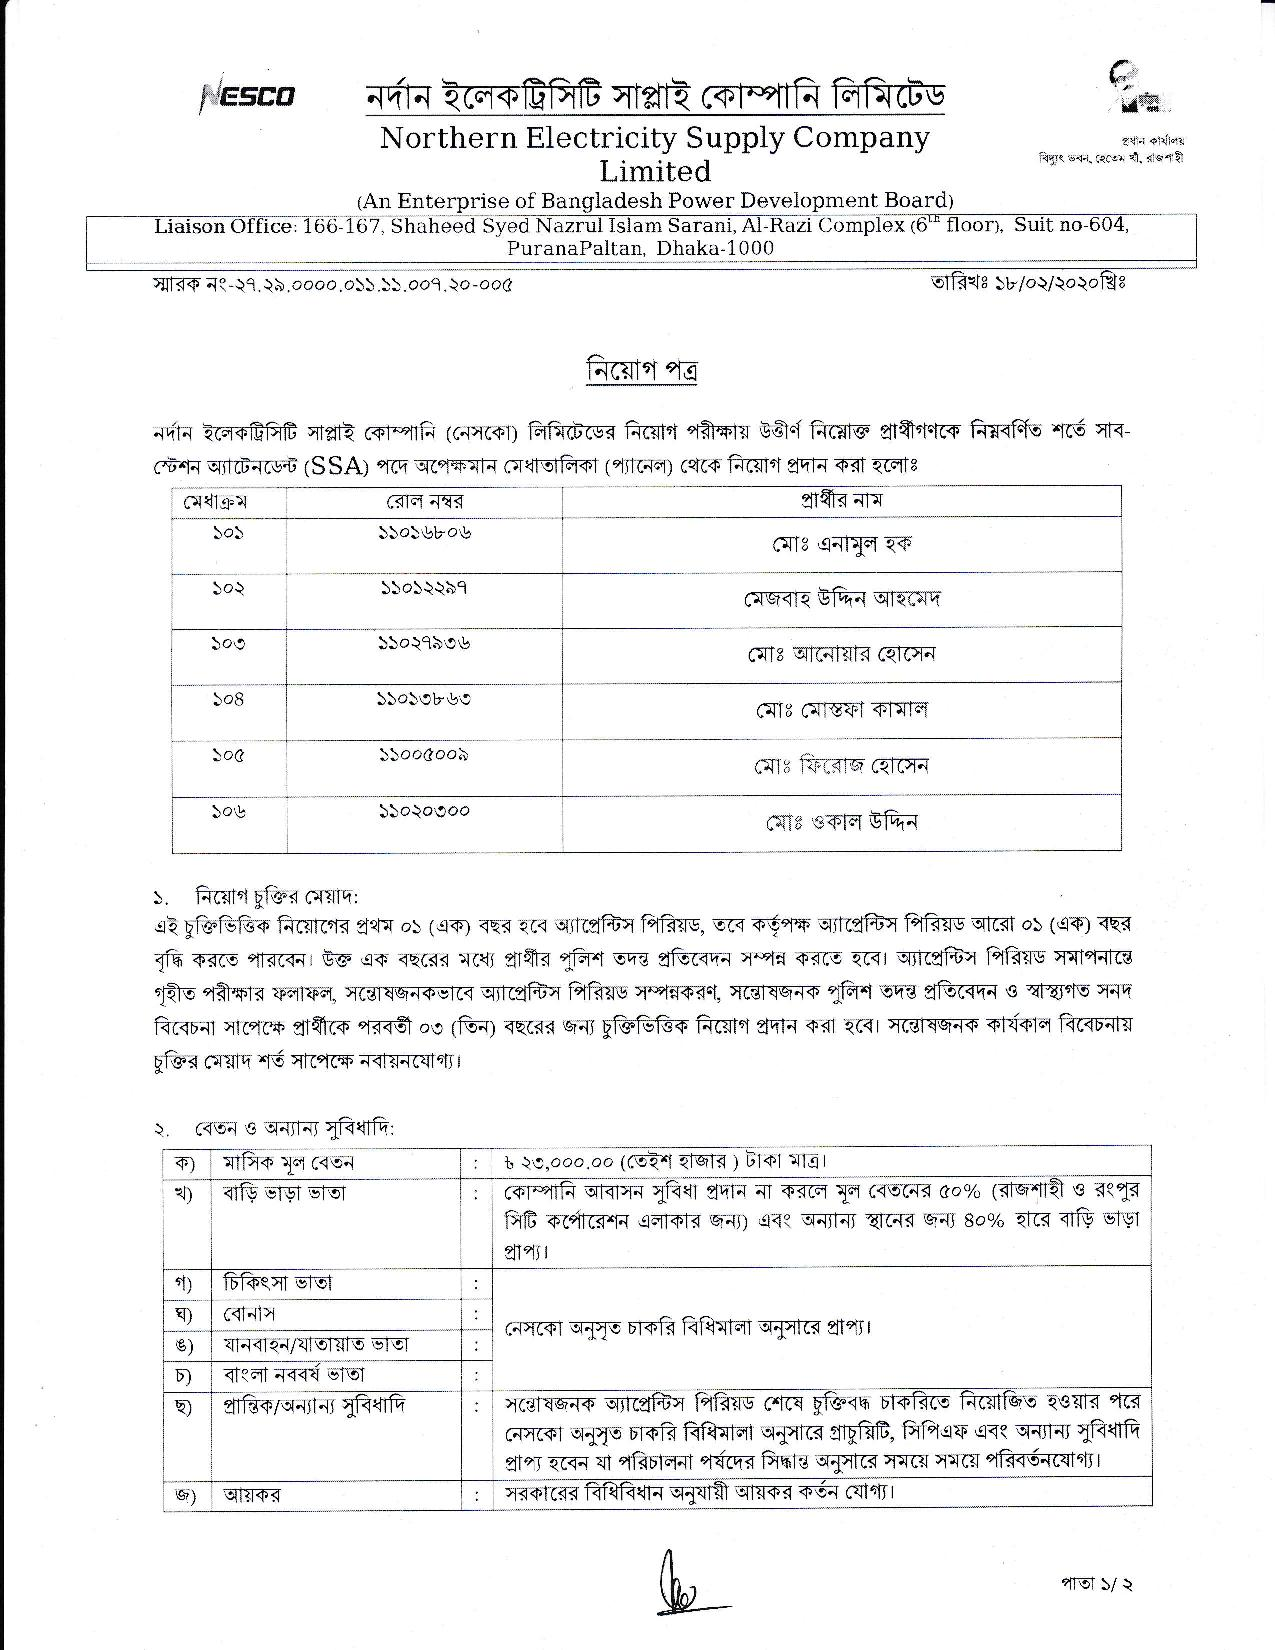 NESCO Waiting list Final appoint result 2020